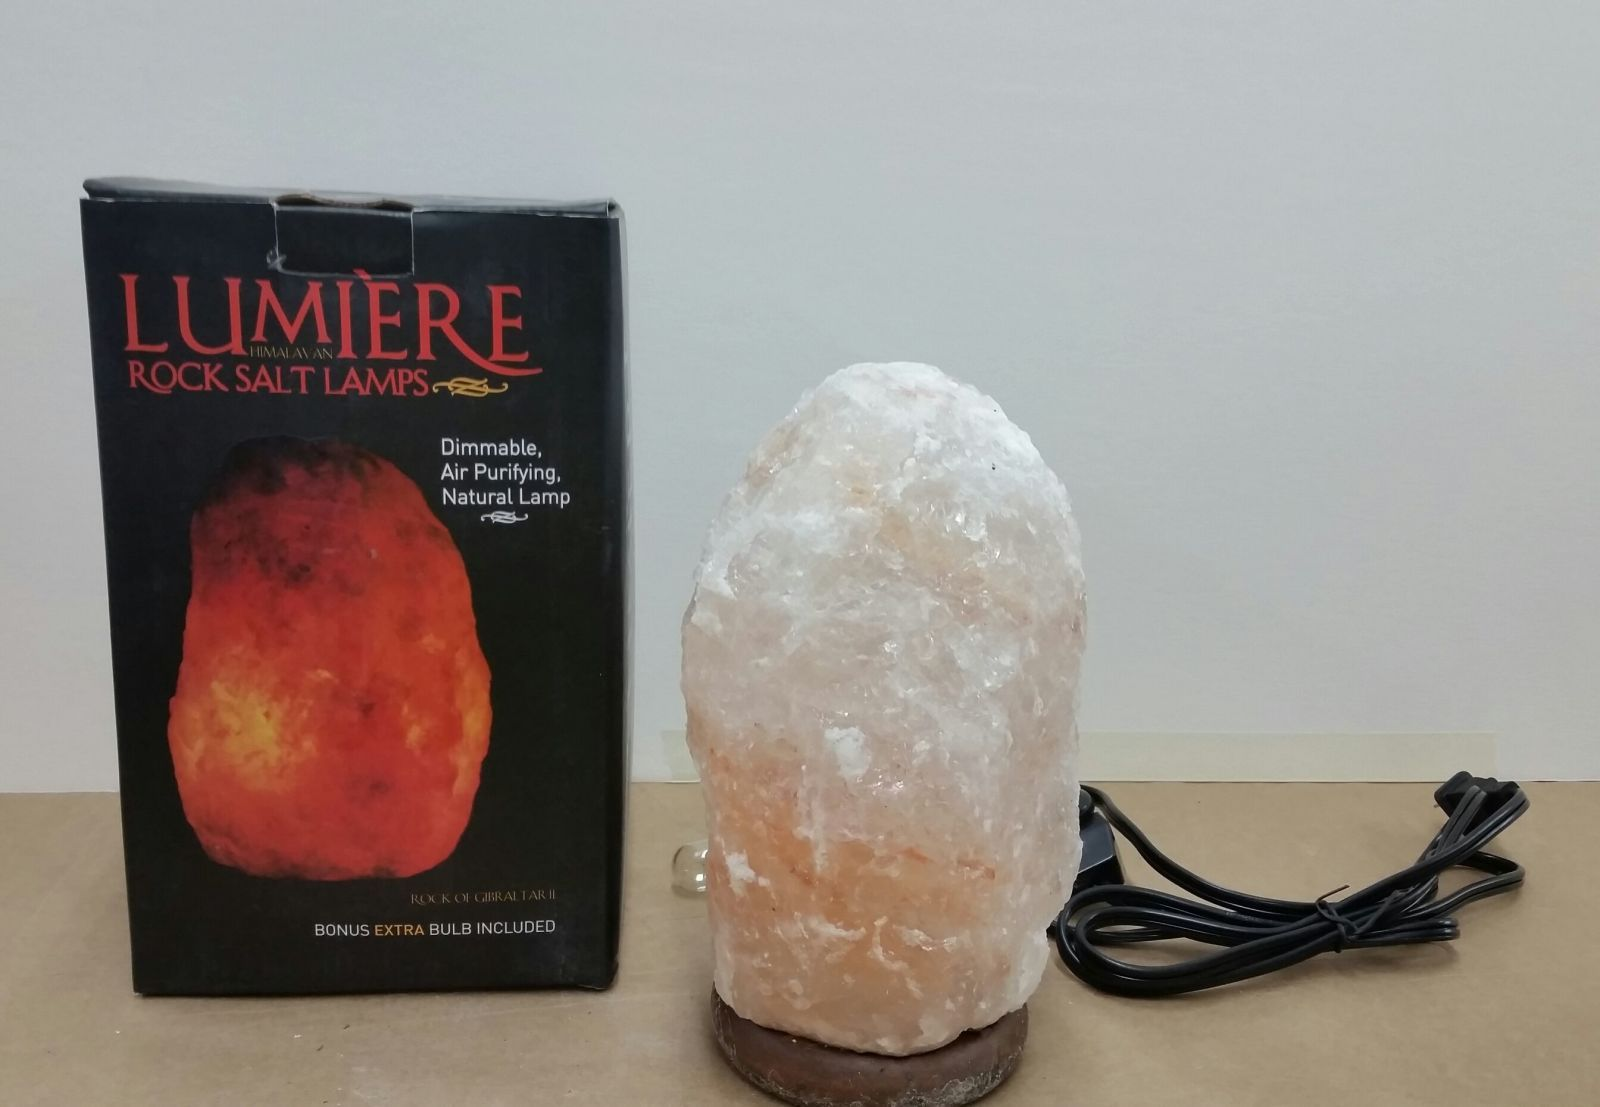 Recalled Salt Lamps Custom Himalayan Rock Salt Lamps Recalled For Fire Electric Shock Risks Review